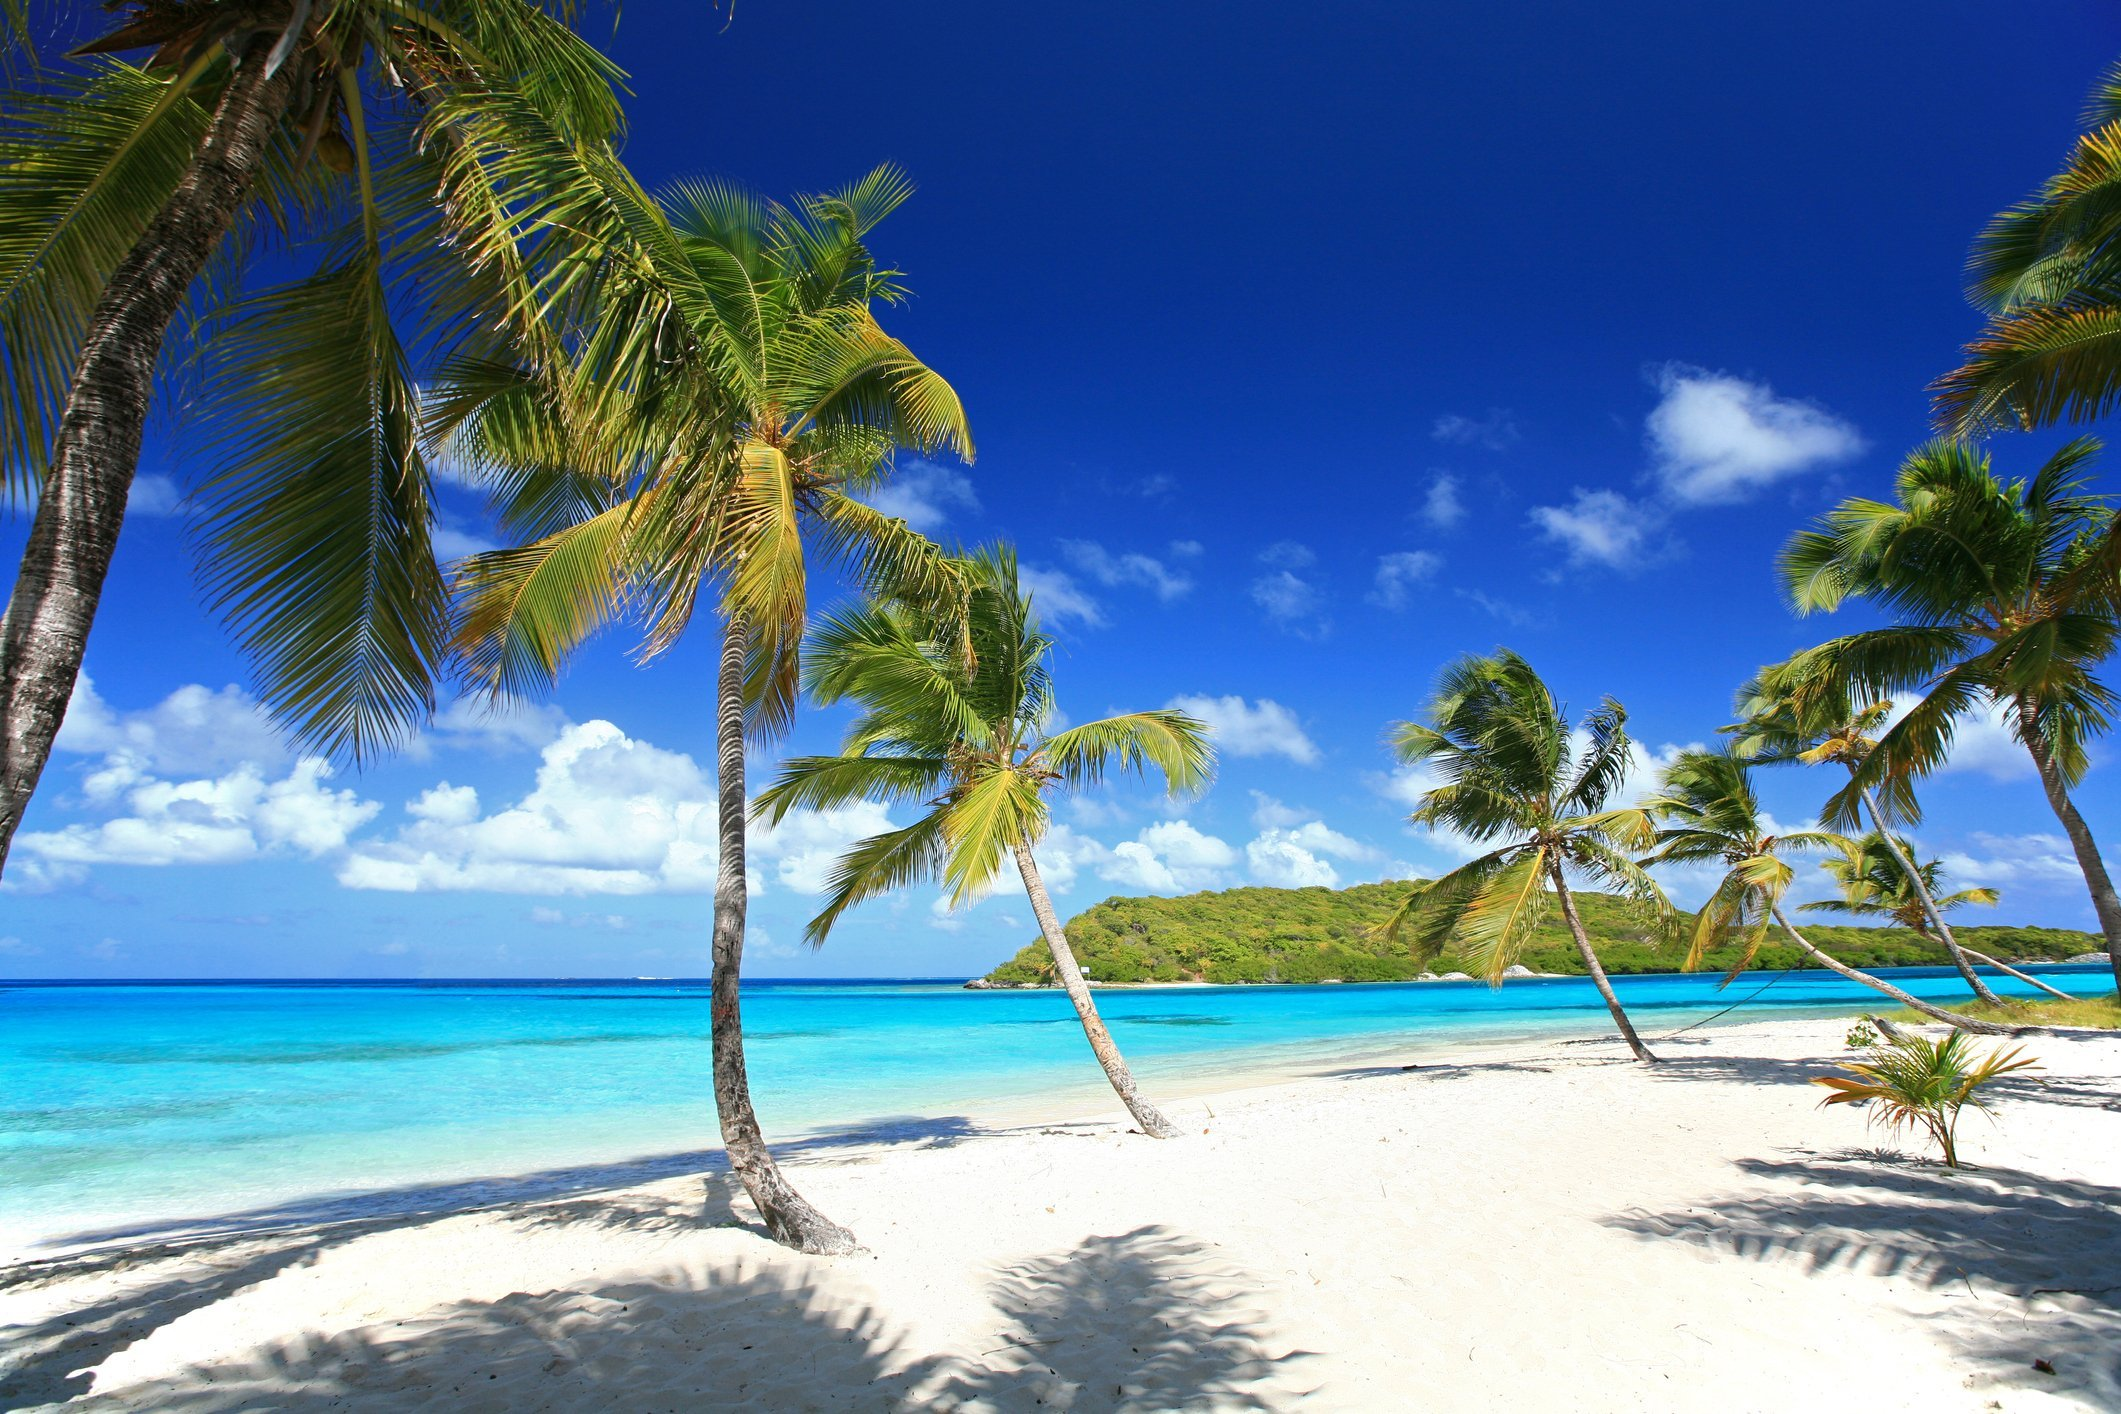 Snorkelling and Sailing in the Tobago Cays Saint Vincent and the Grenadines